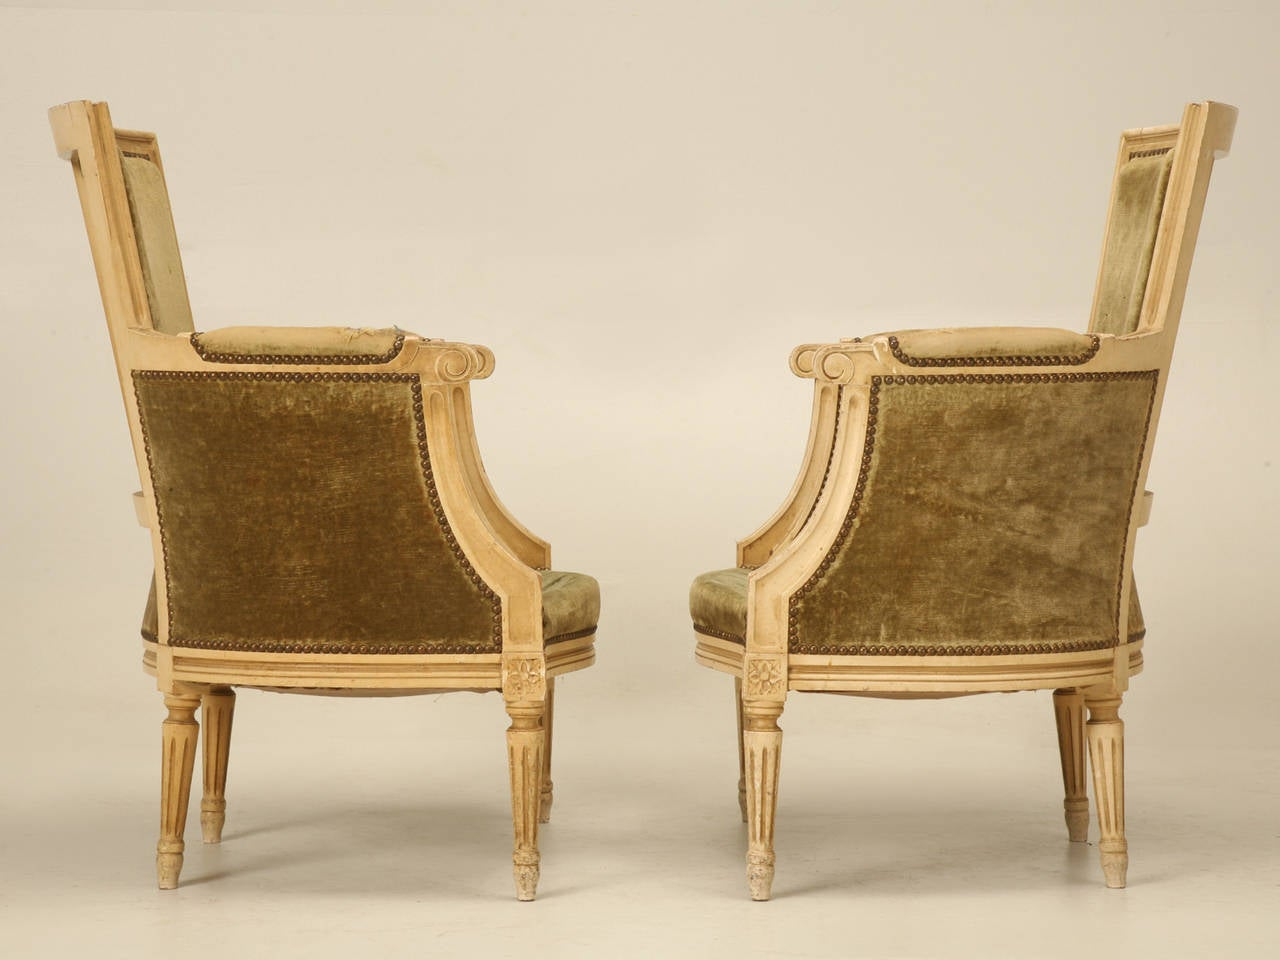 Louis XVI Style Bergere Chairs in Original Paint For Sale 4